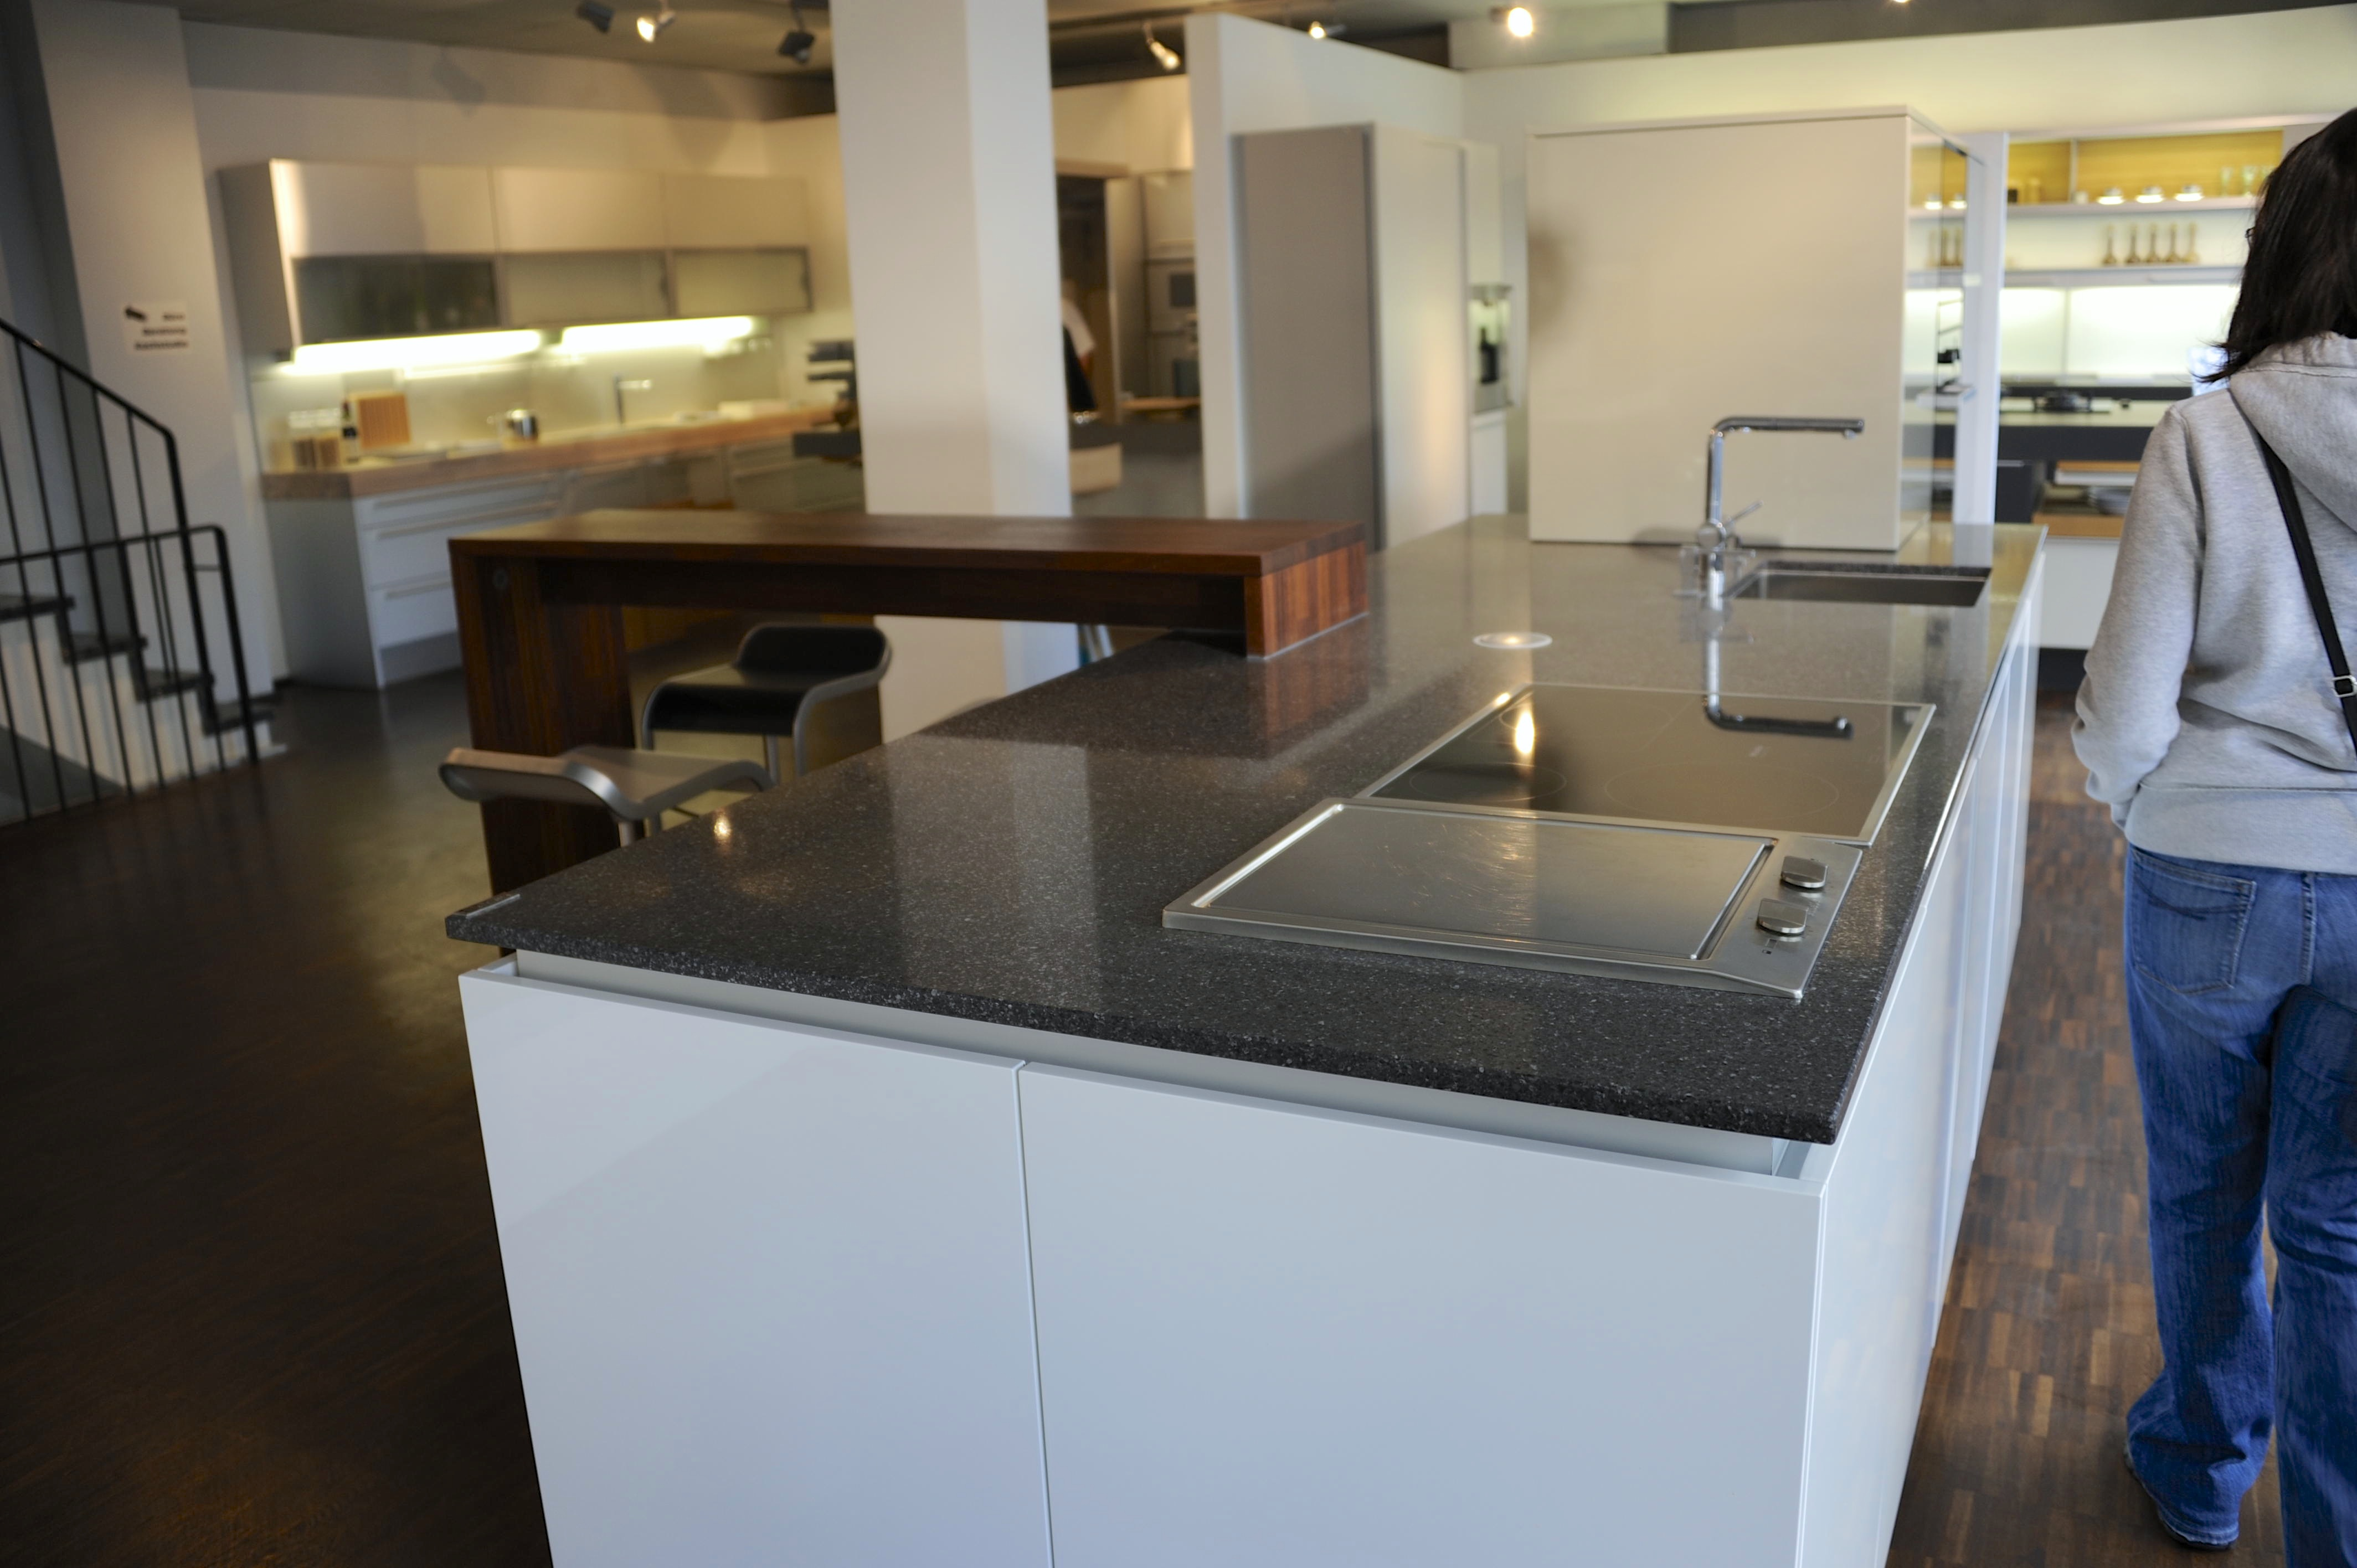 Modernist Kitchen Design Showrooms Jet City Gastrophysics